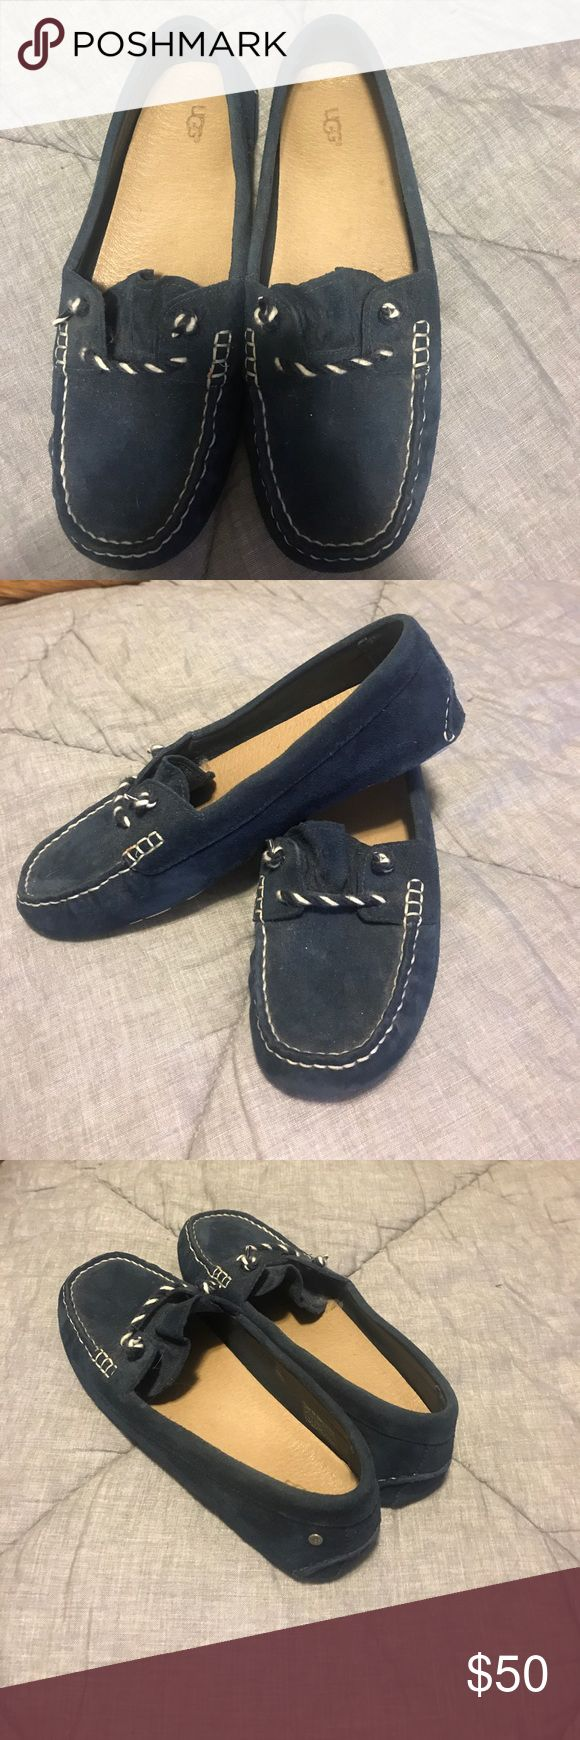 Ugg Navy Suede nautical Loafers Navy Suede loafers - not slippers- these are similar to a driving moc. Very cute and comfy with jeans and shorts, dress them up or down. Worn 2 or 3 times at most. Bought just a little too small. UGG Shoes Flats & Loafers